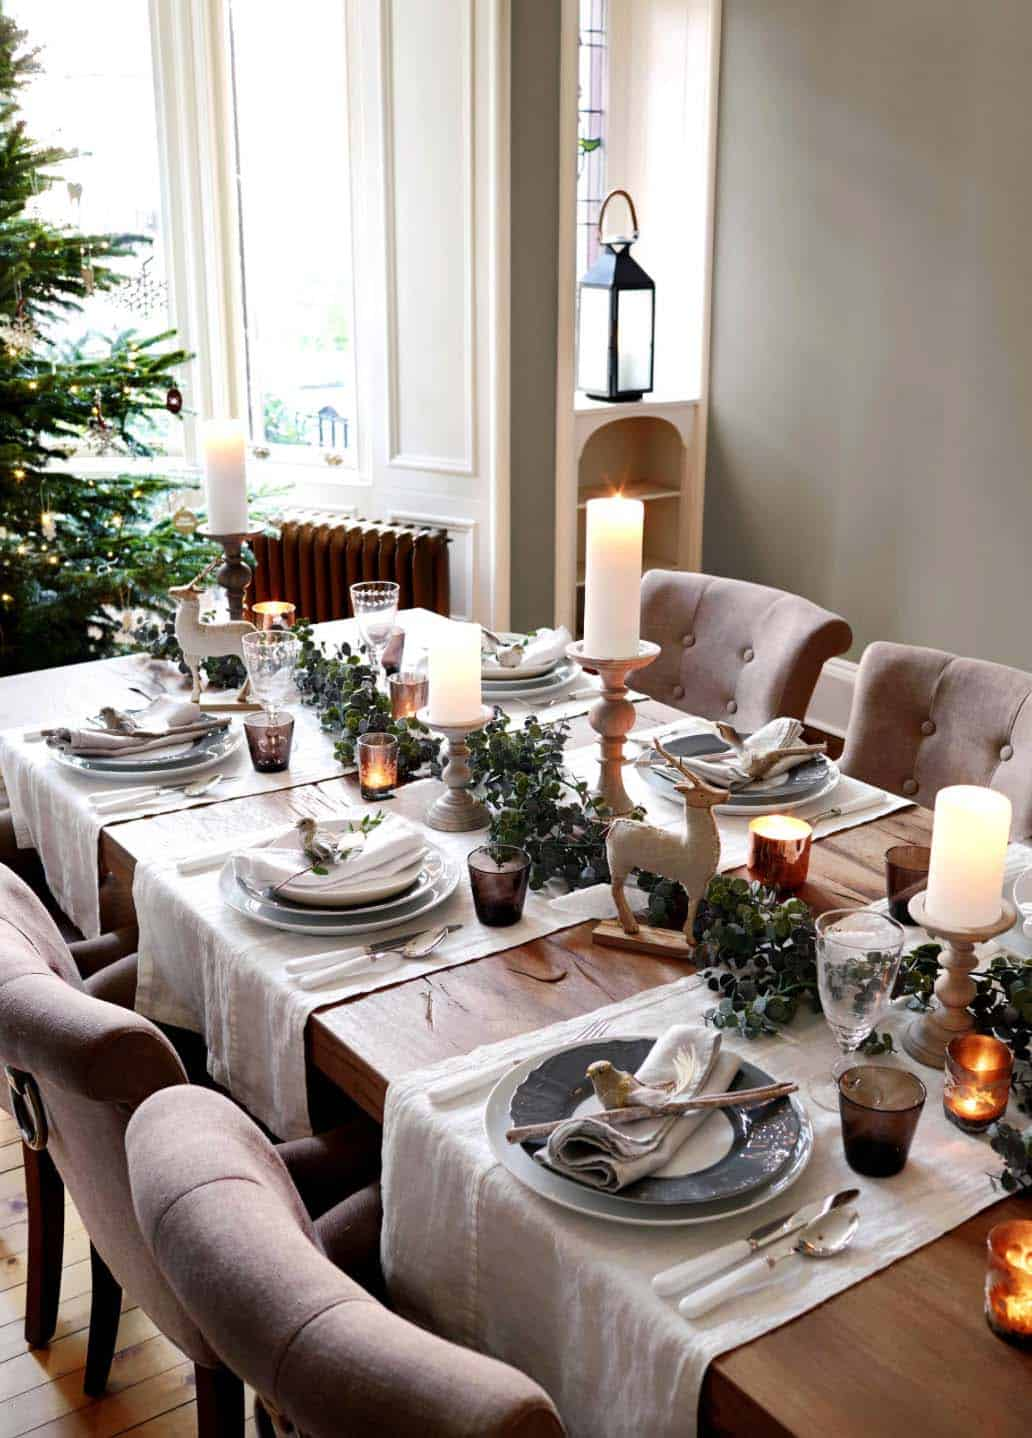 Decorating Ideas Dining Table 33 Inspiring Christmas Decor Ideas To Elevate Your Dining Table